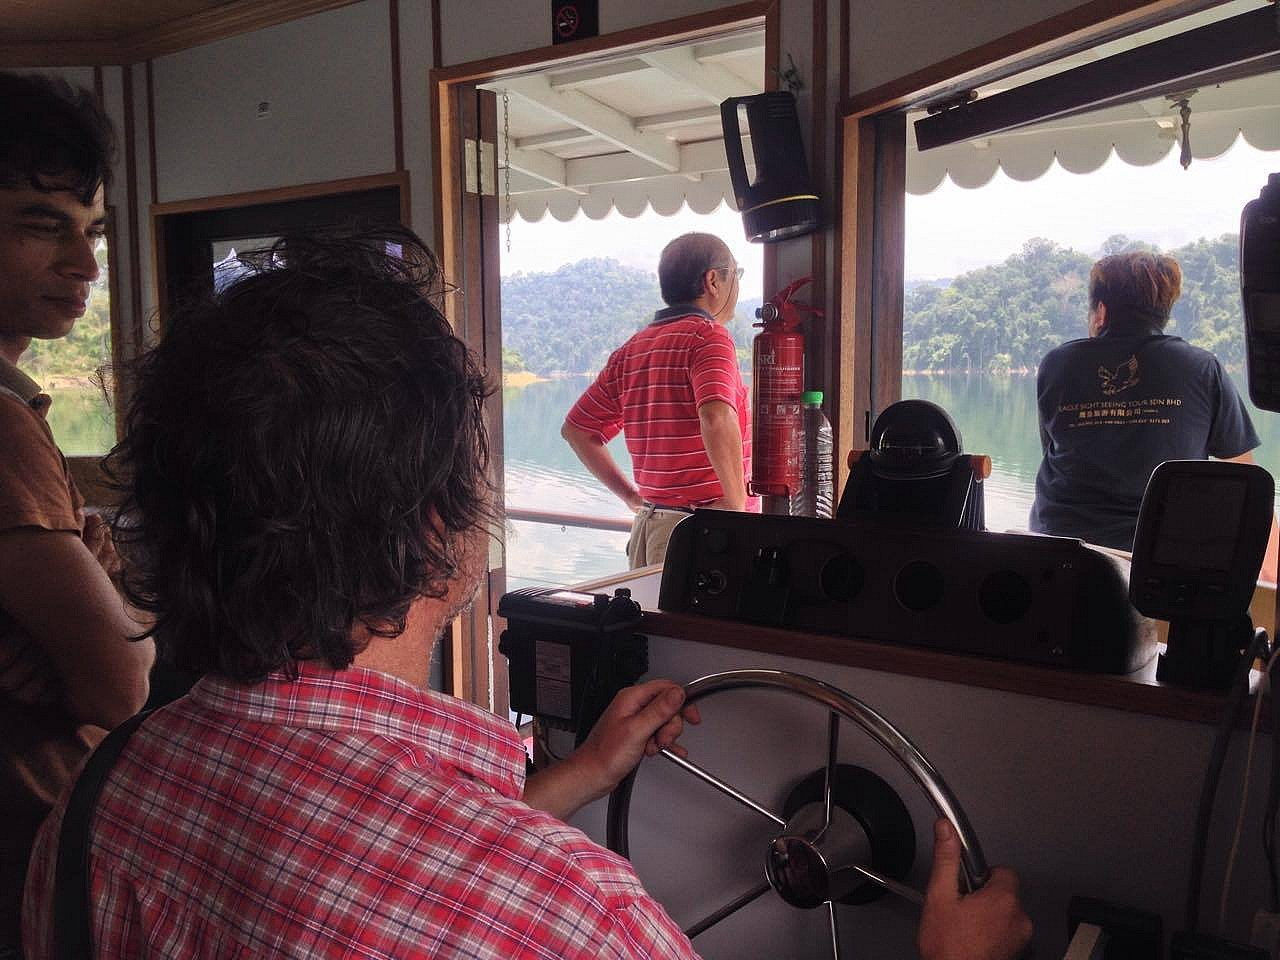 At the helm of the boathouse